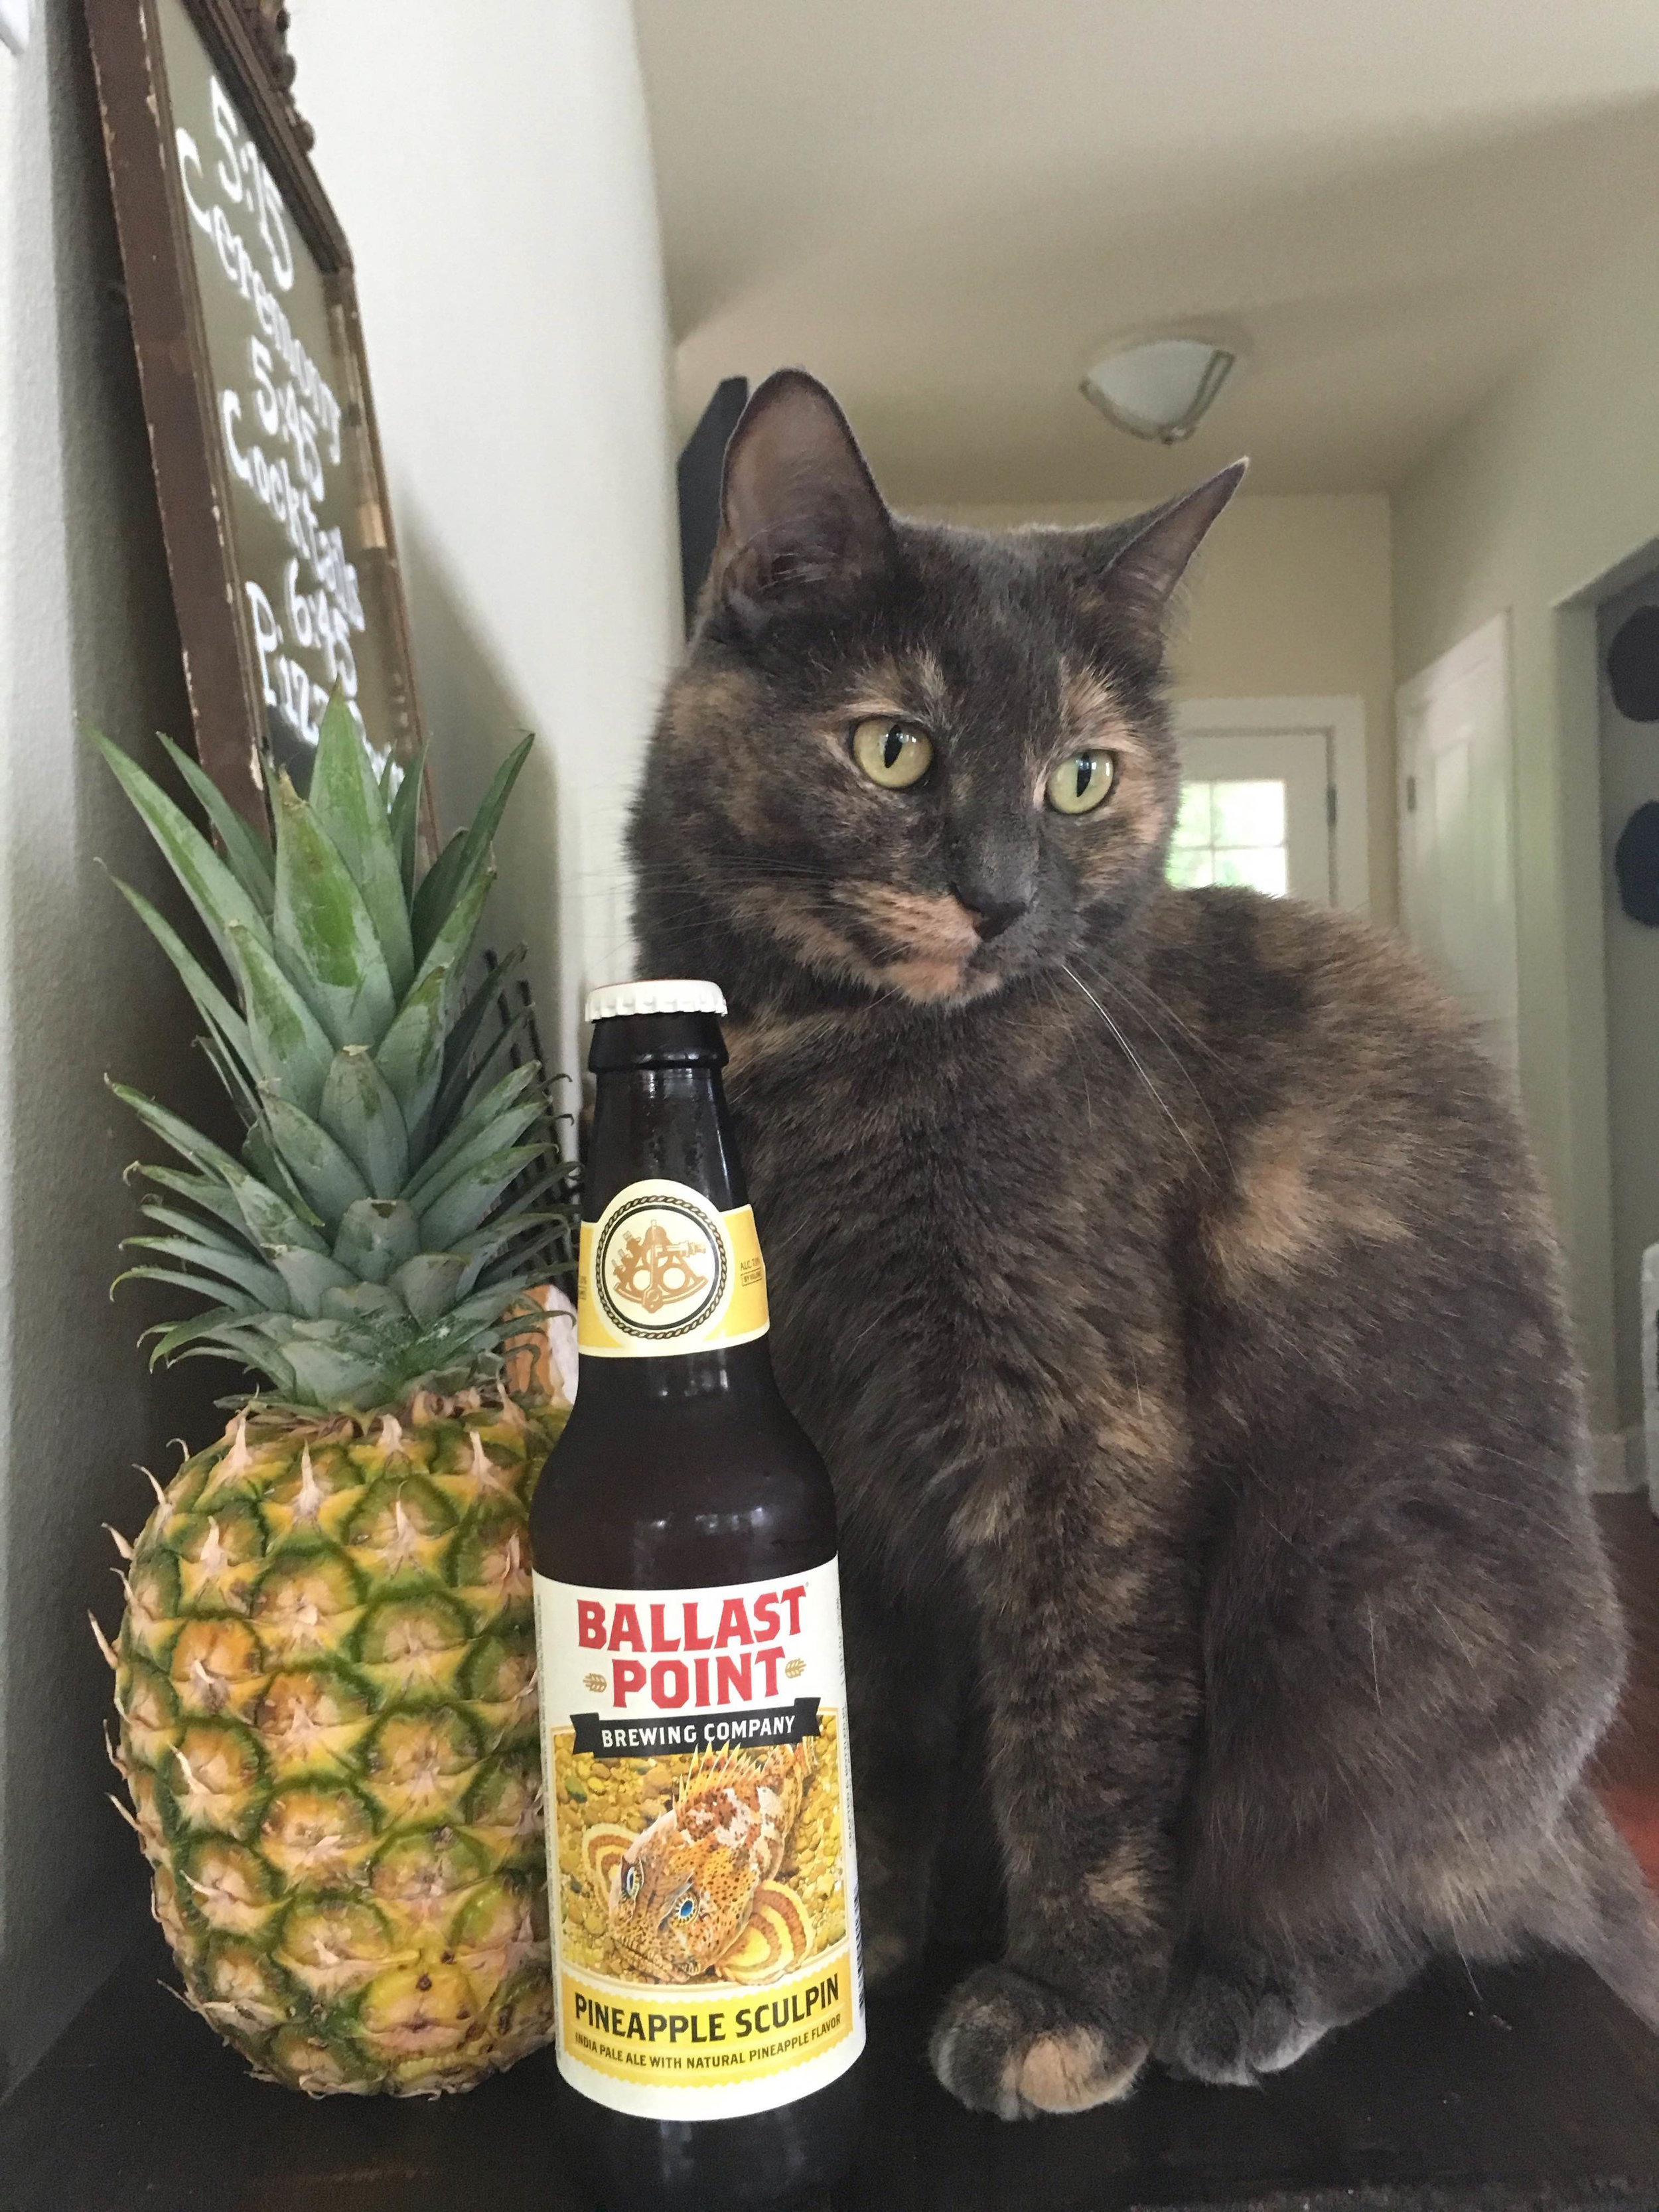 It's five o'clock somewhere … but it doesn't matter what time it is cuz Mary's a cat….